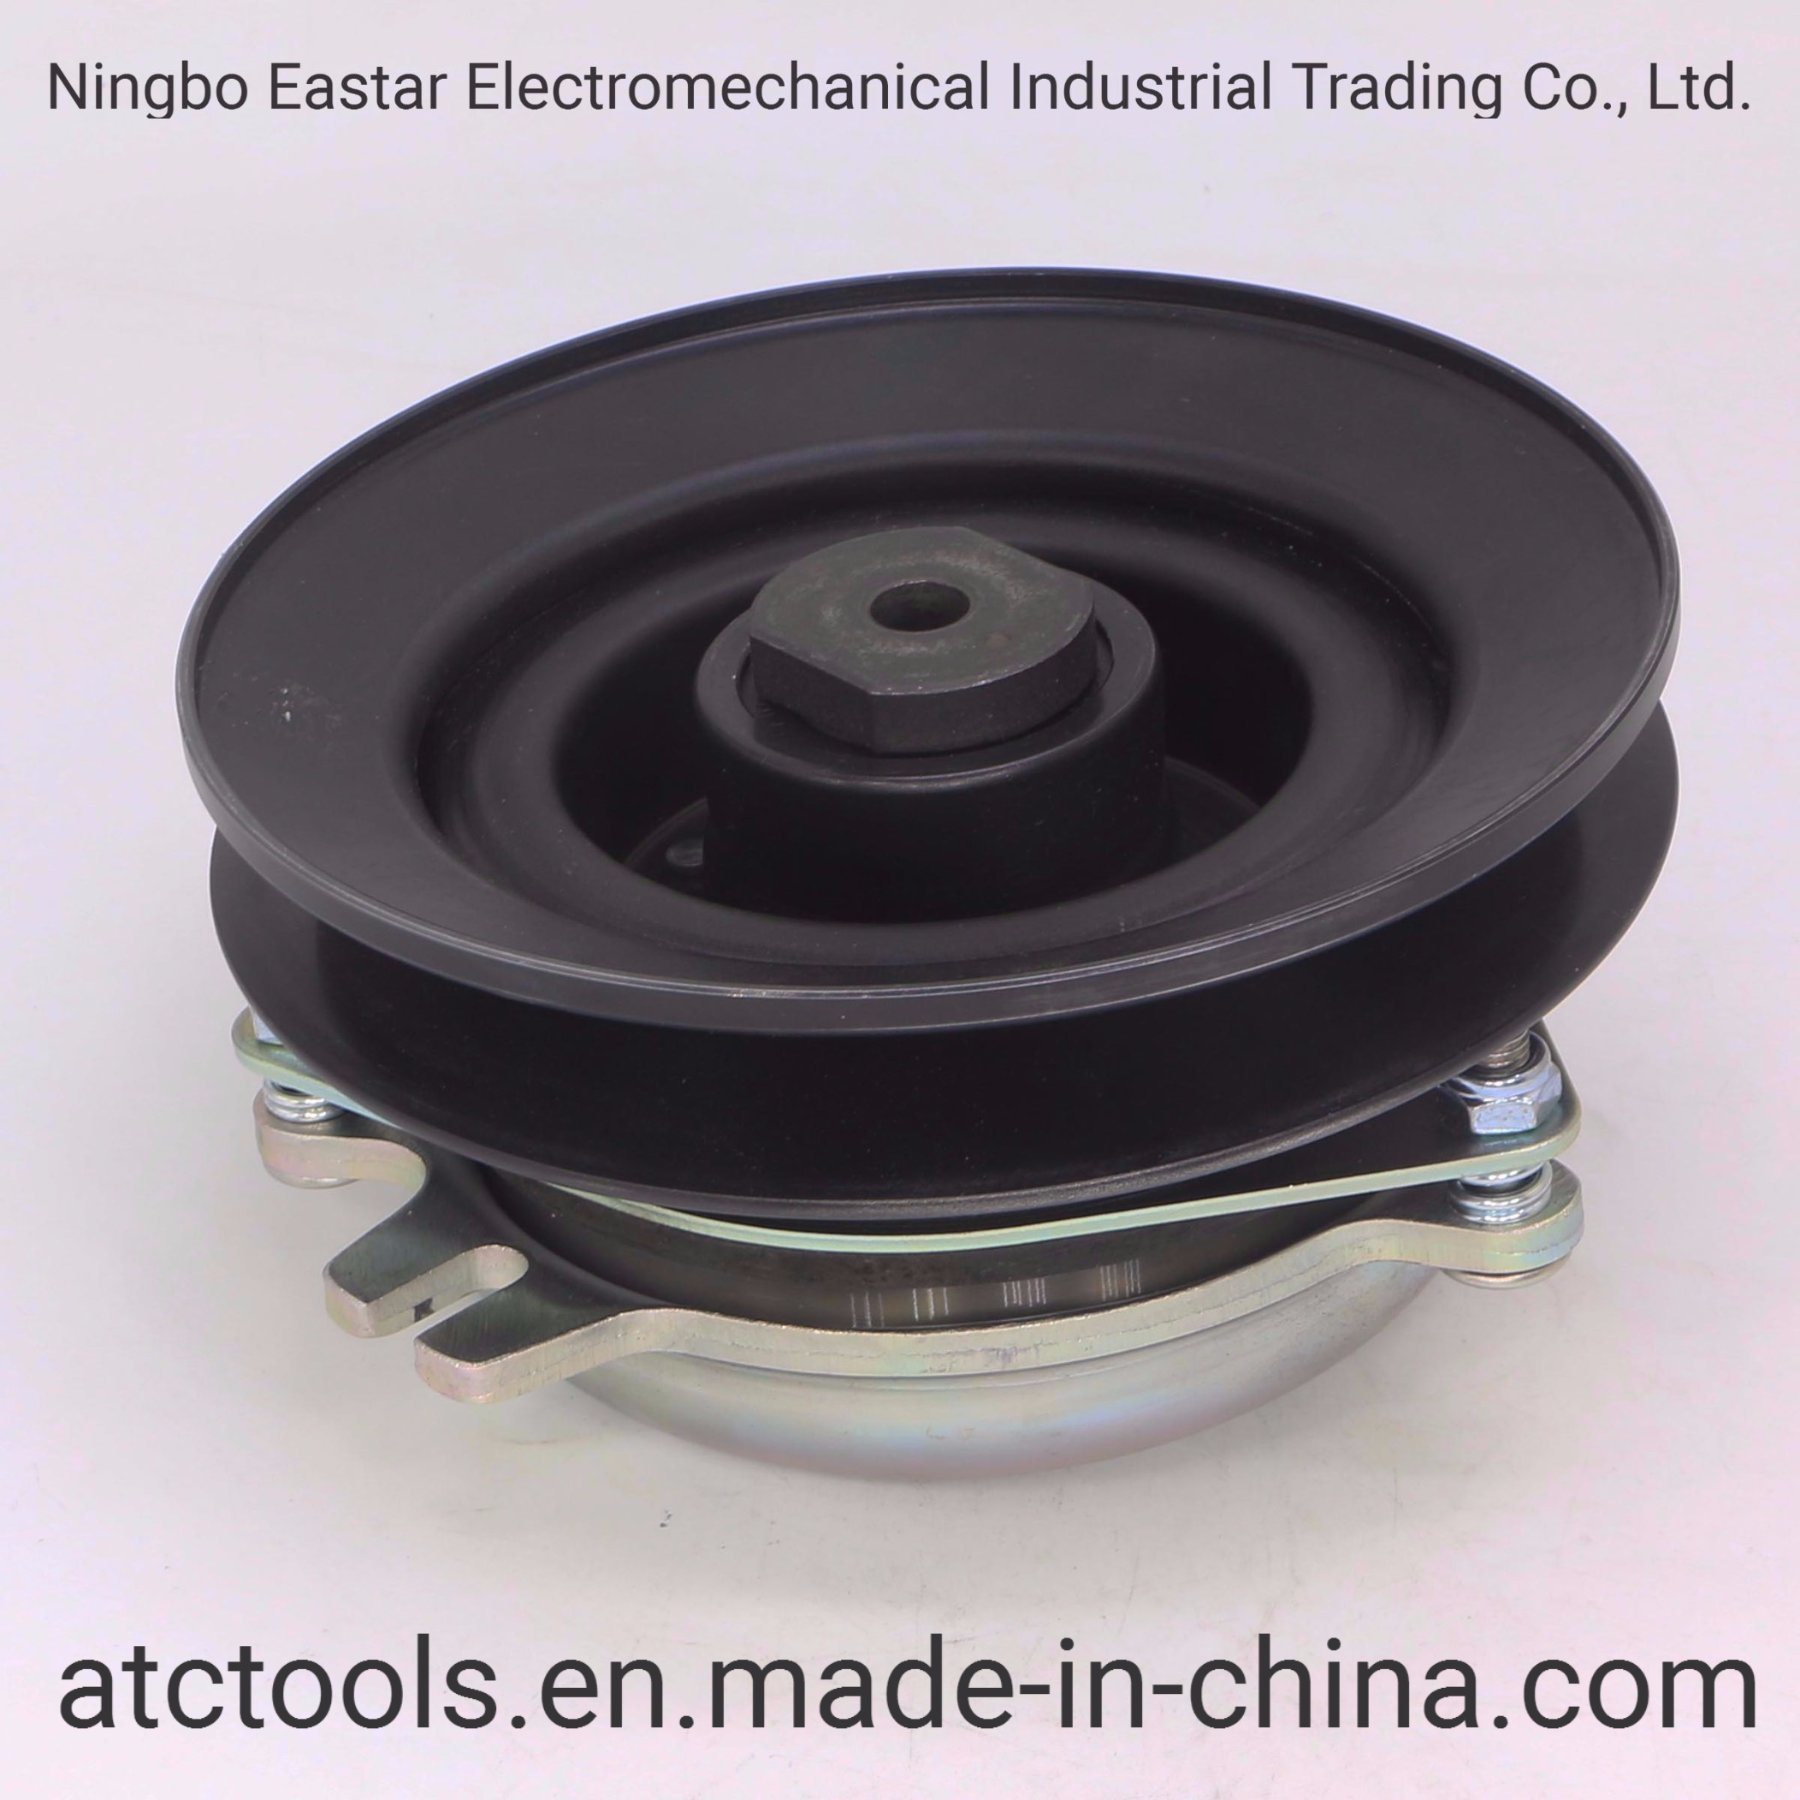 China Clutch For Tractor, Clutch For Tractor Manufacturers, Suppliers,  Price | Made-in-China com